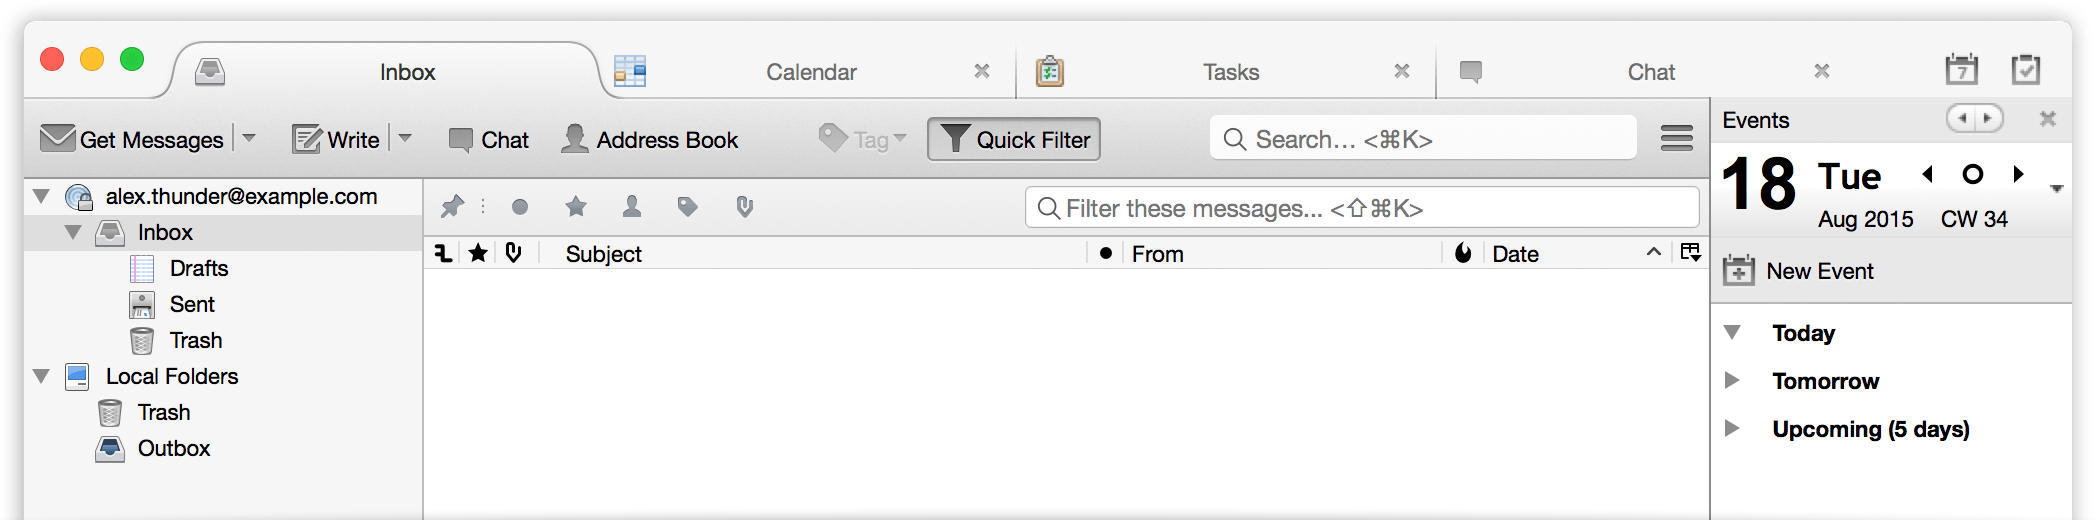 thunderbird-mail-client.png